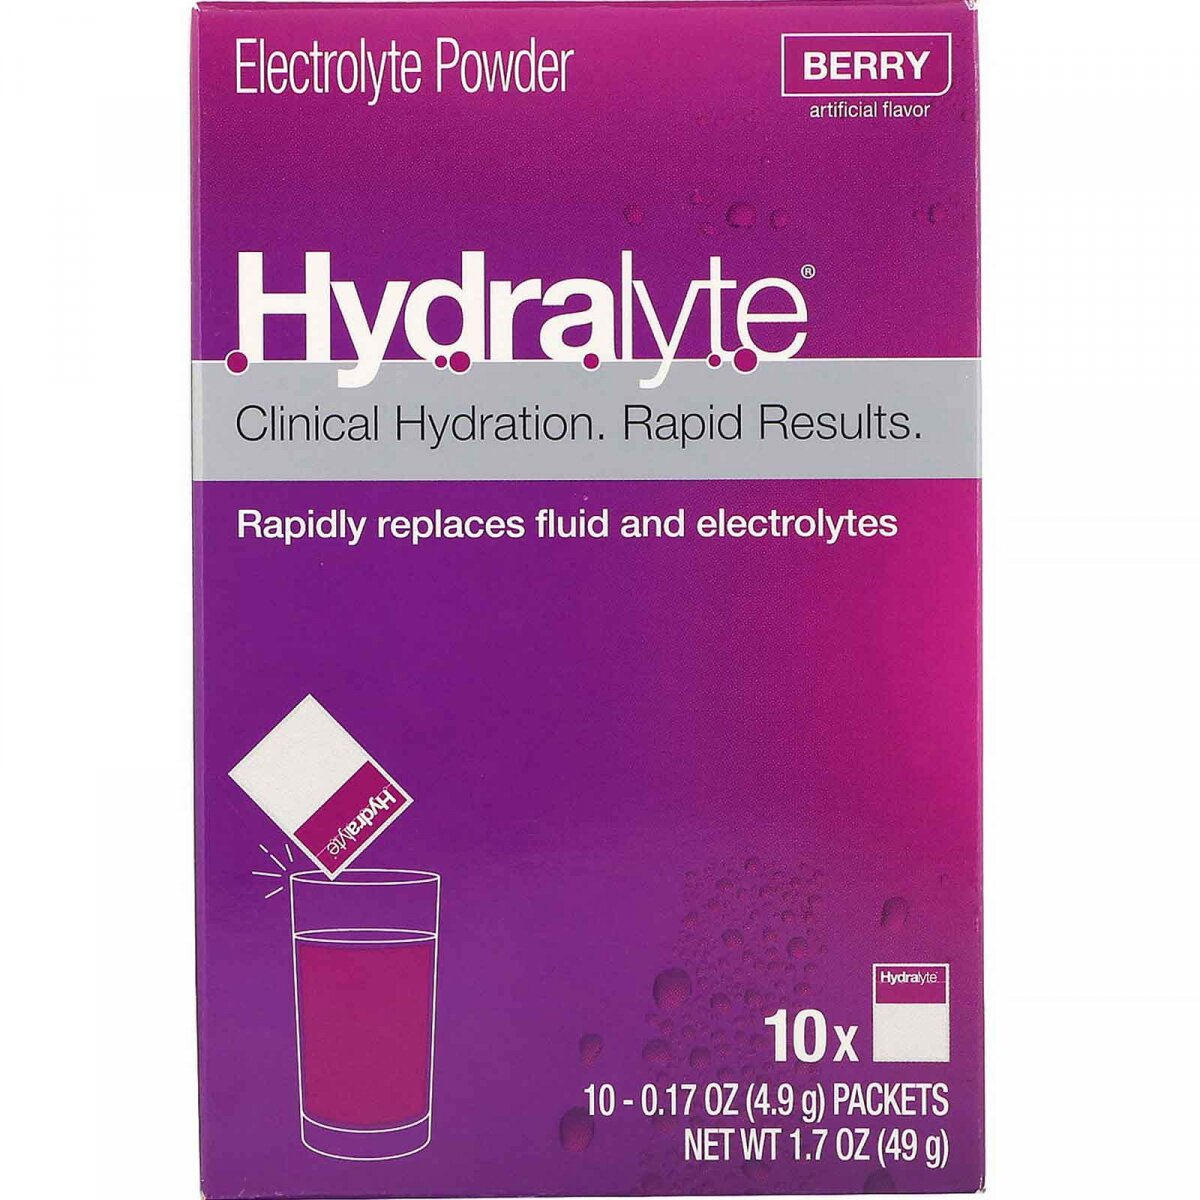 Hydralyte, Clinical Hydration, Electrolyte Powder, Berry, 10 packets 0.17 oz (4.9 g) Each